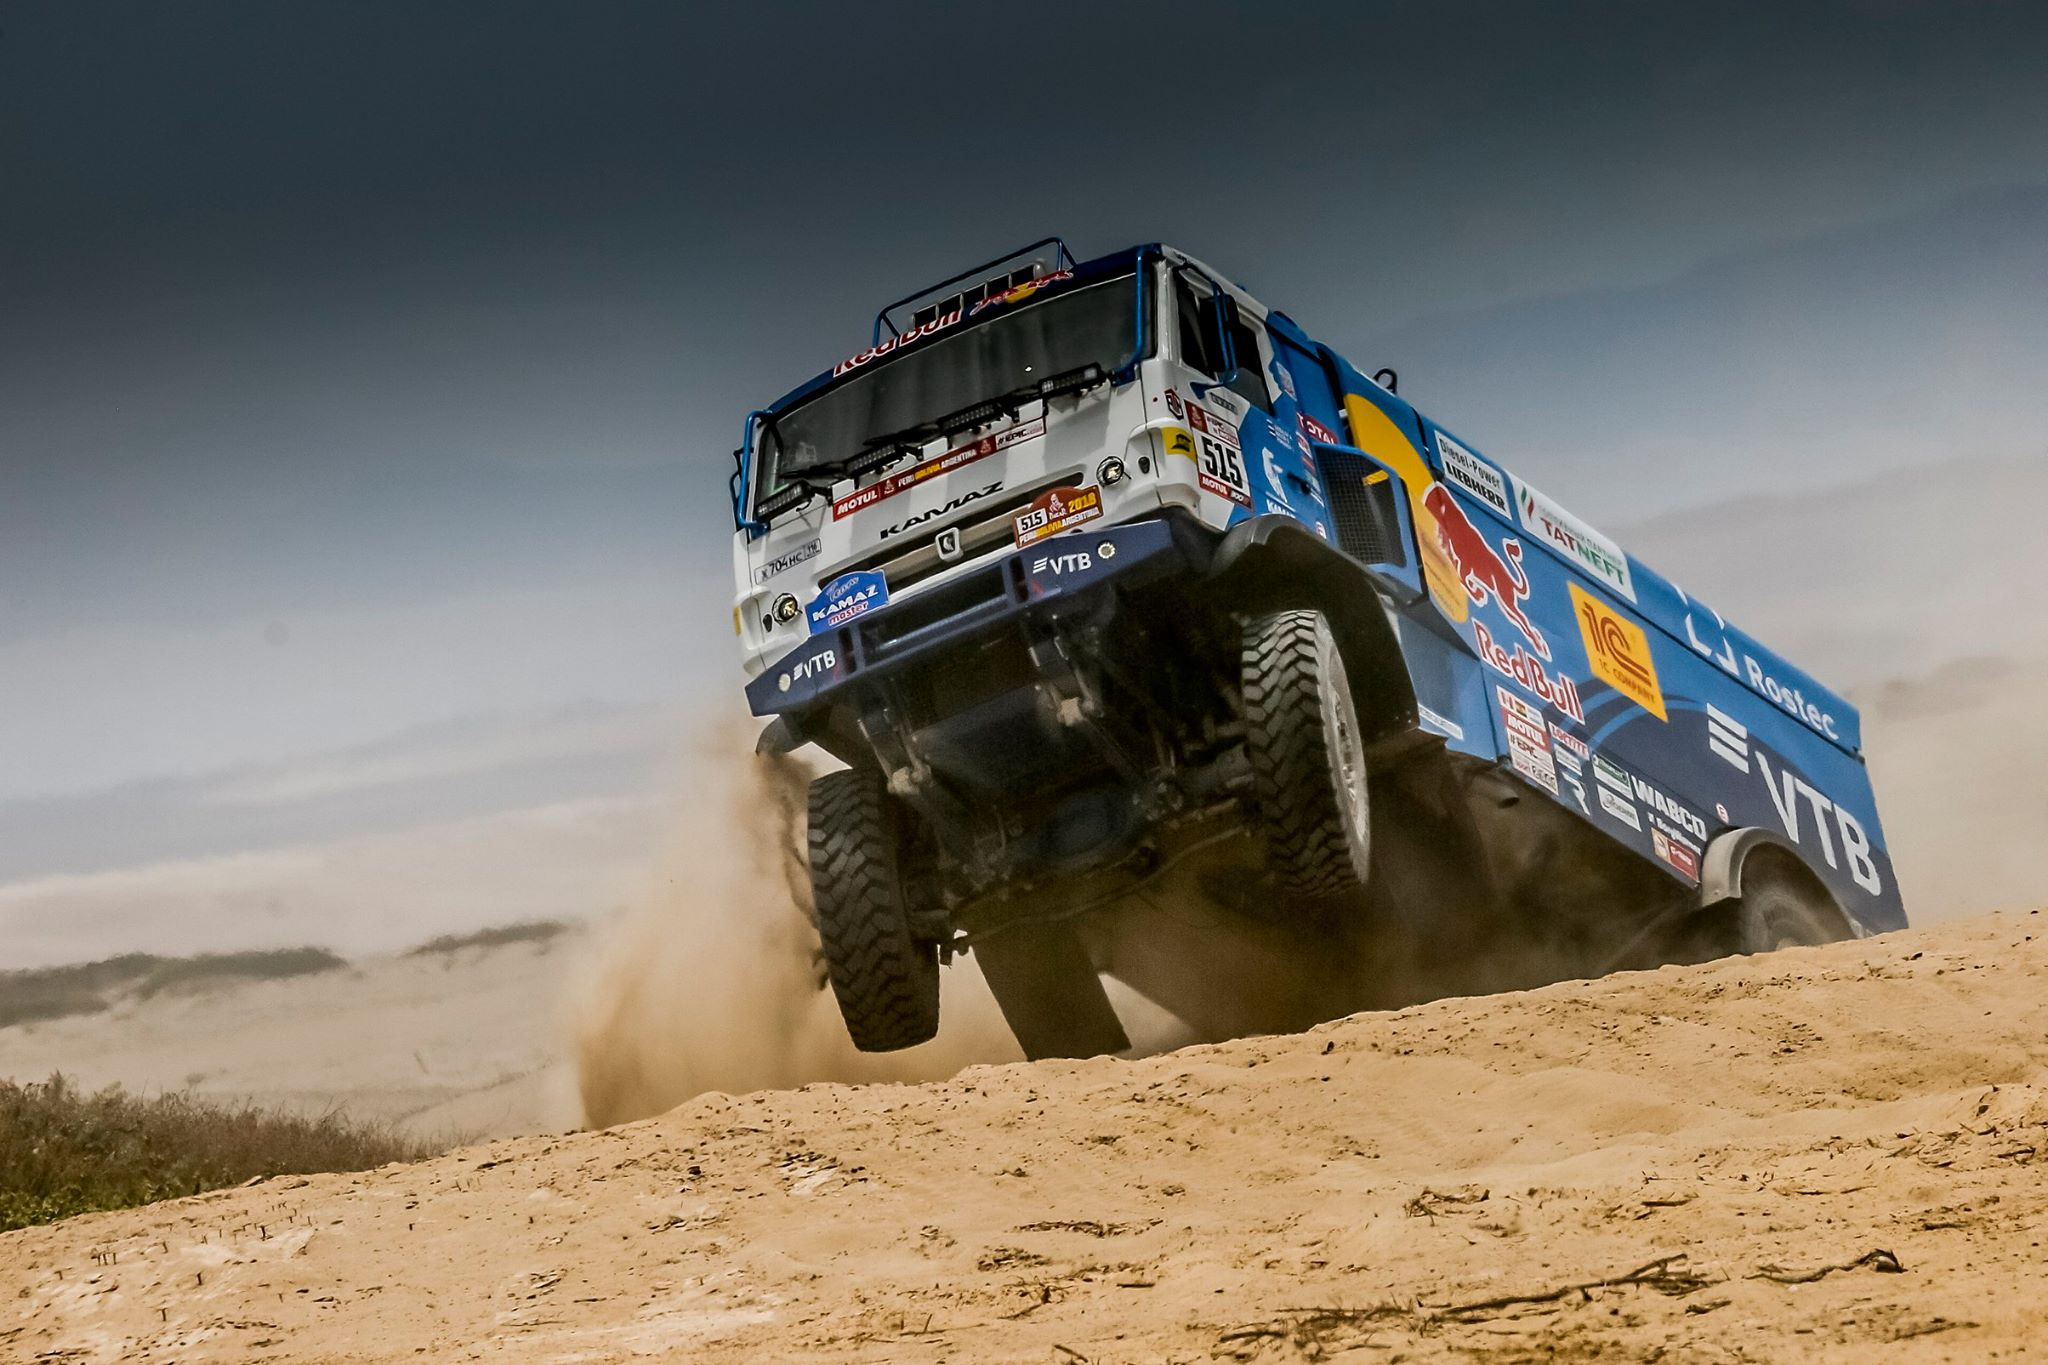 Rally Dakar 2018 Day 4 (19)